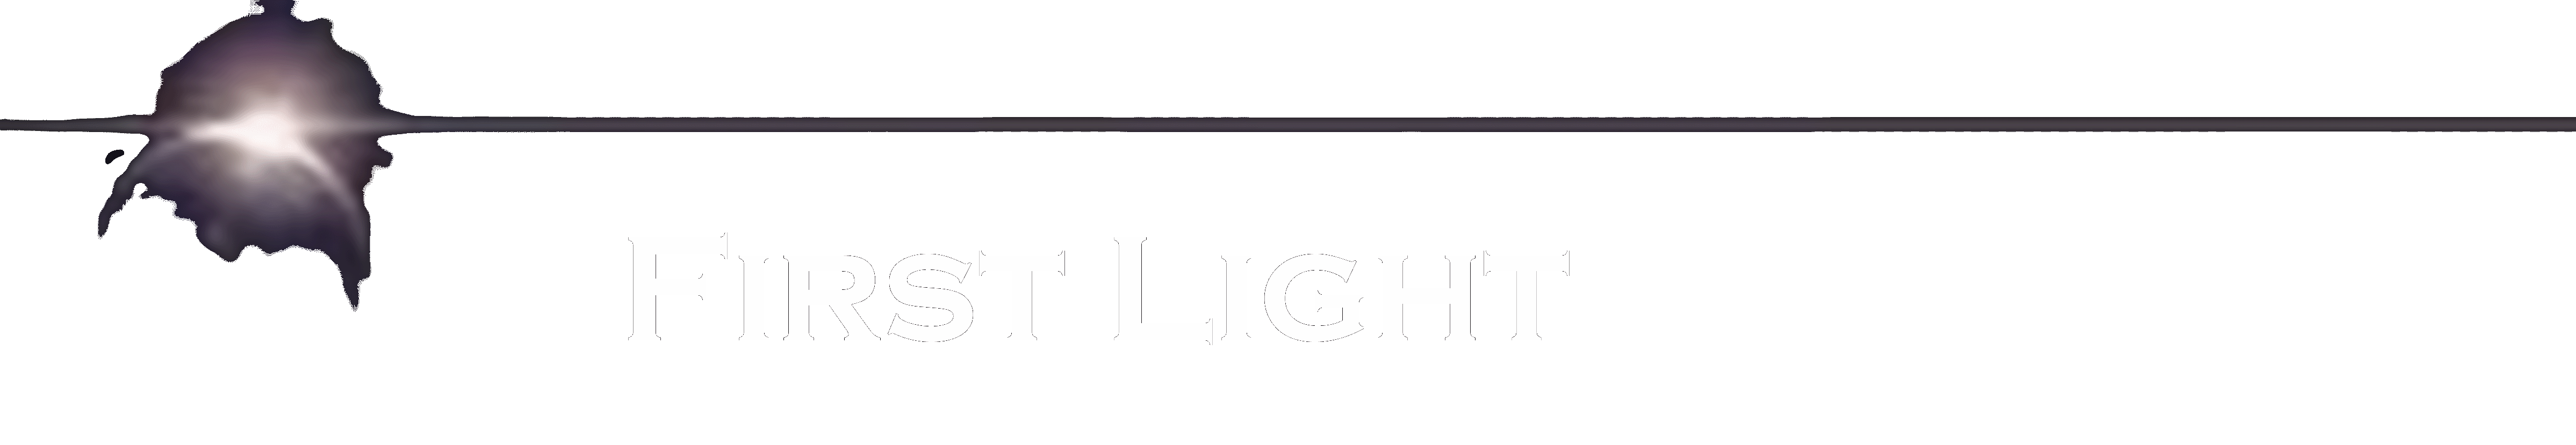 First Light Software